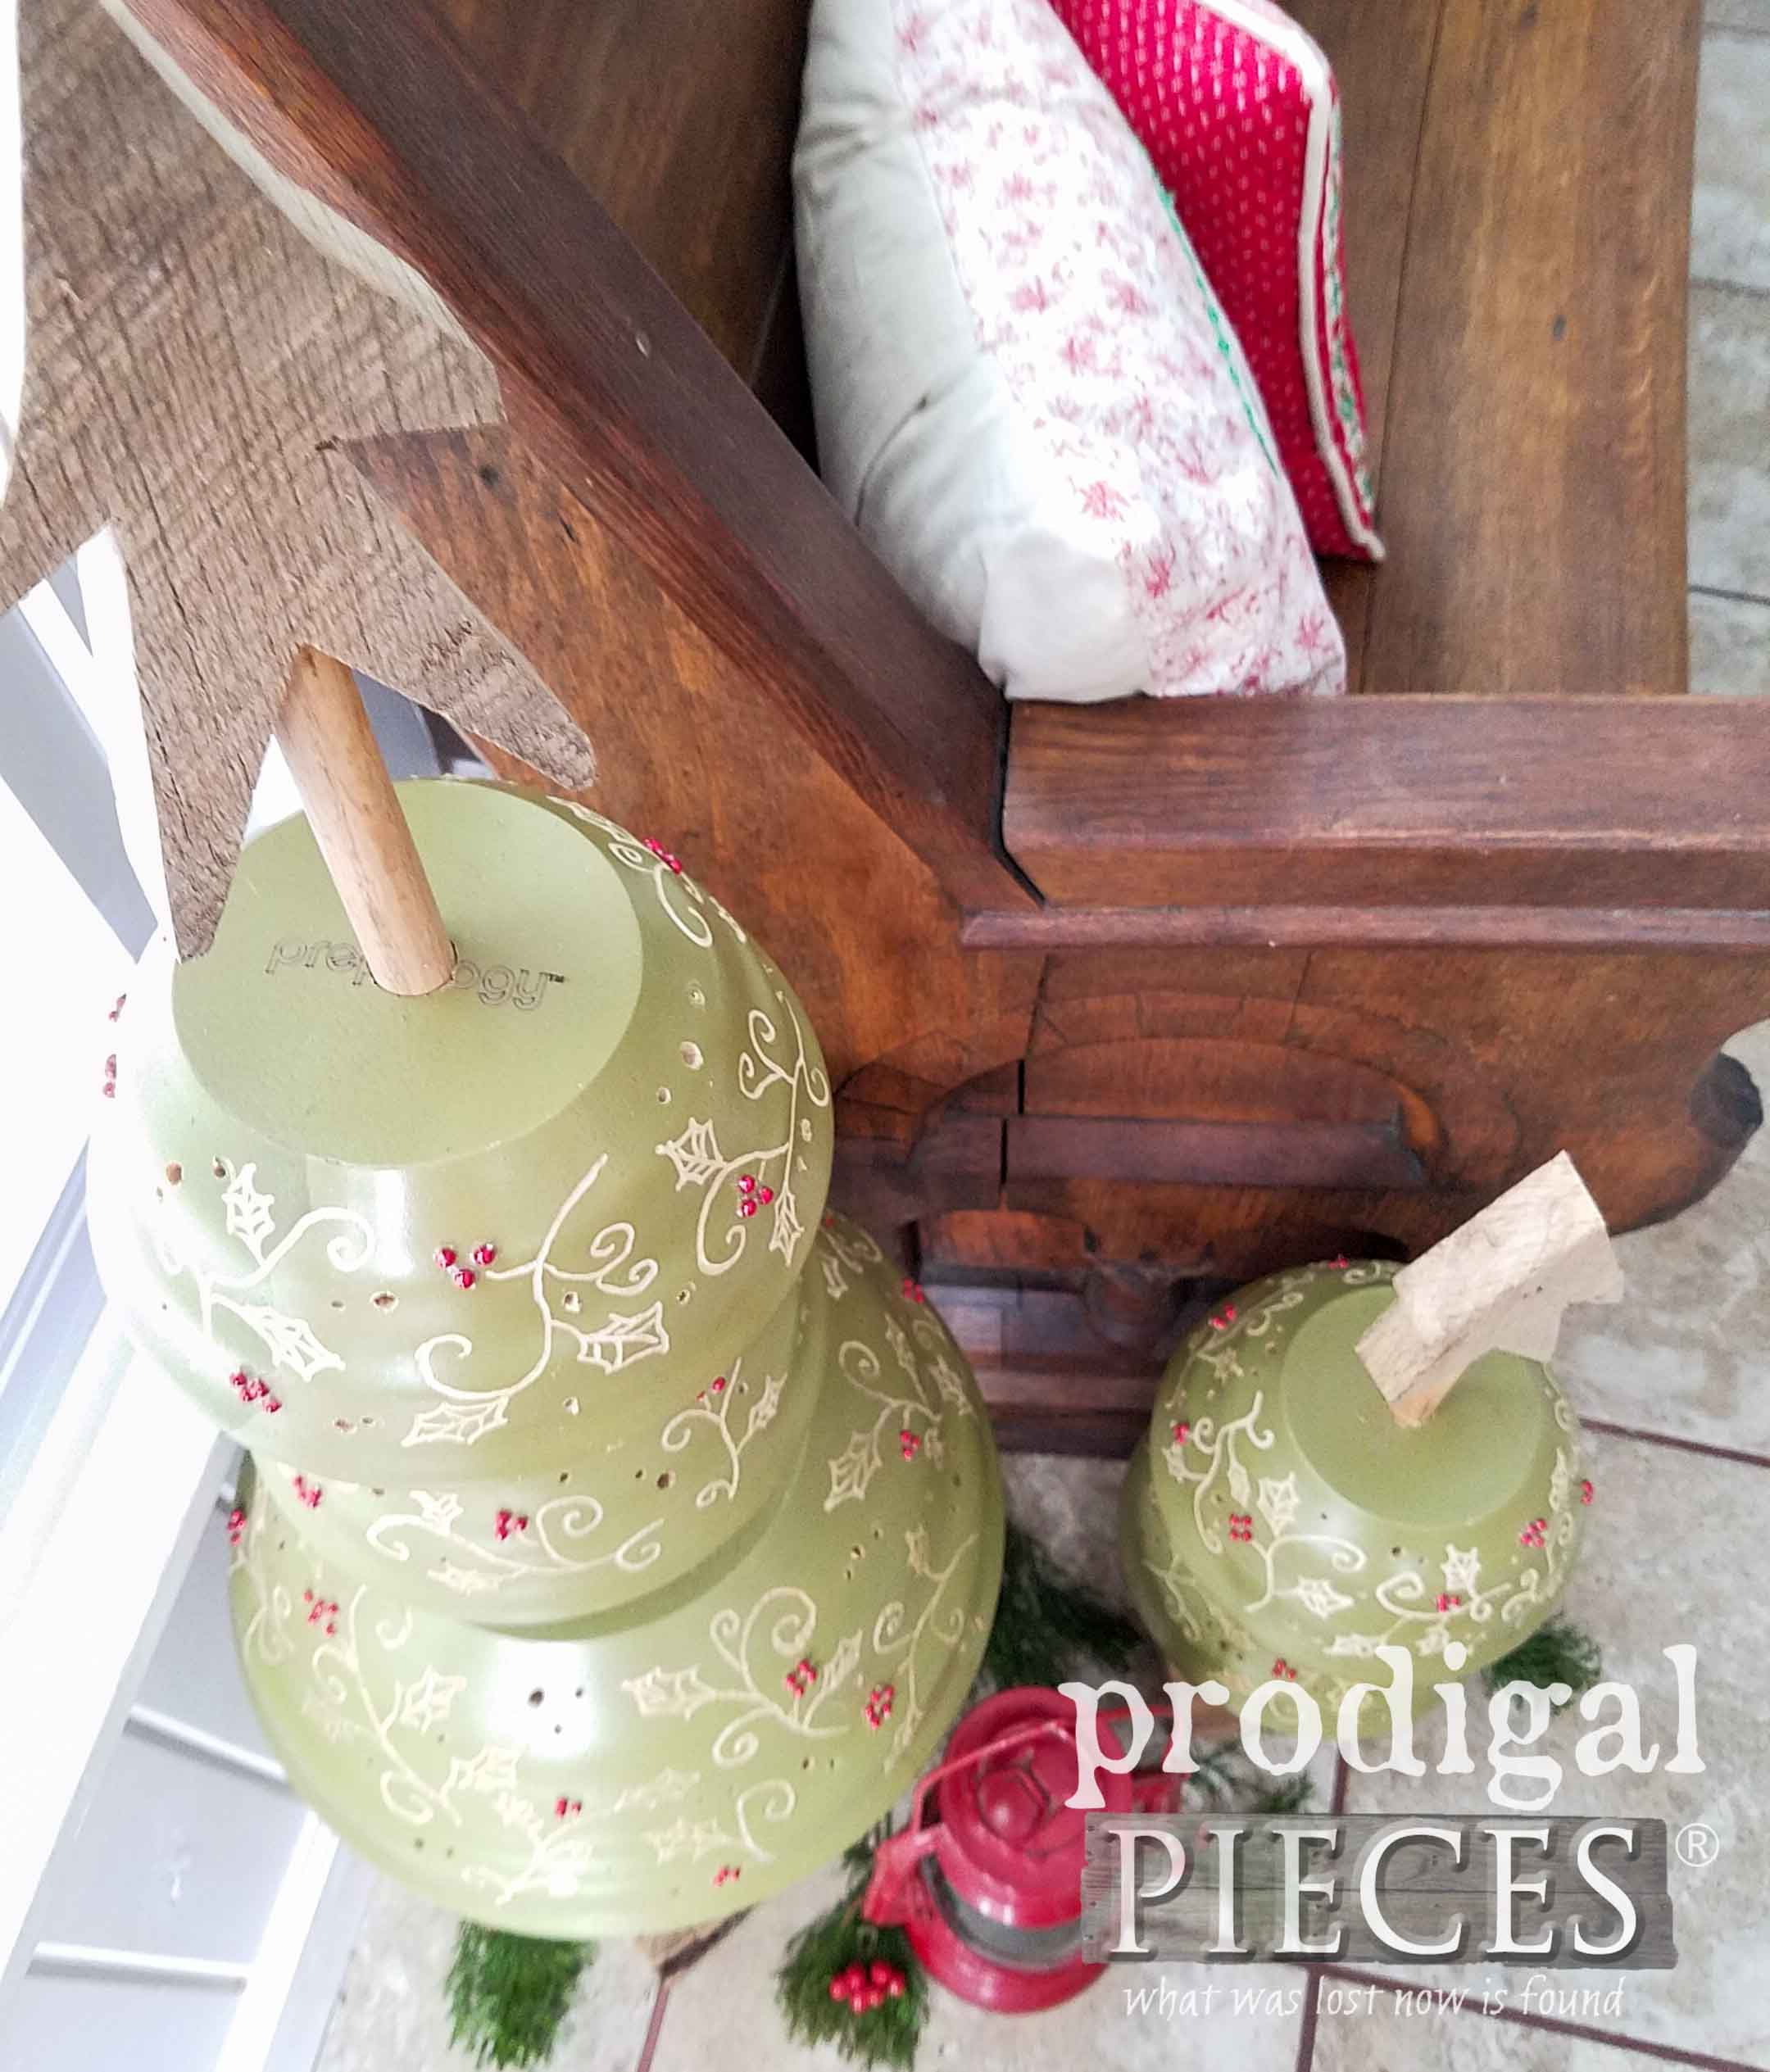 Repurposed and Upcycled Wooden Salad Bowls Turned Christmas Trees by Larissa of Prodigal Pieces | prodigalpieces.com